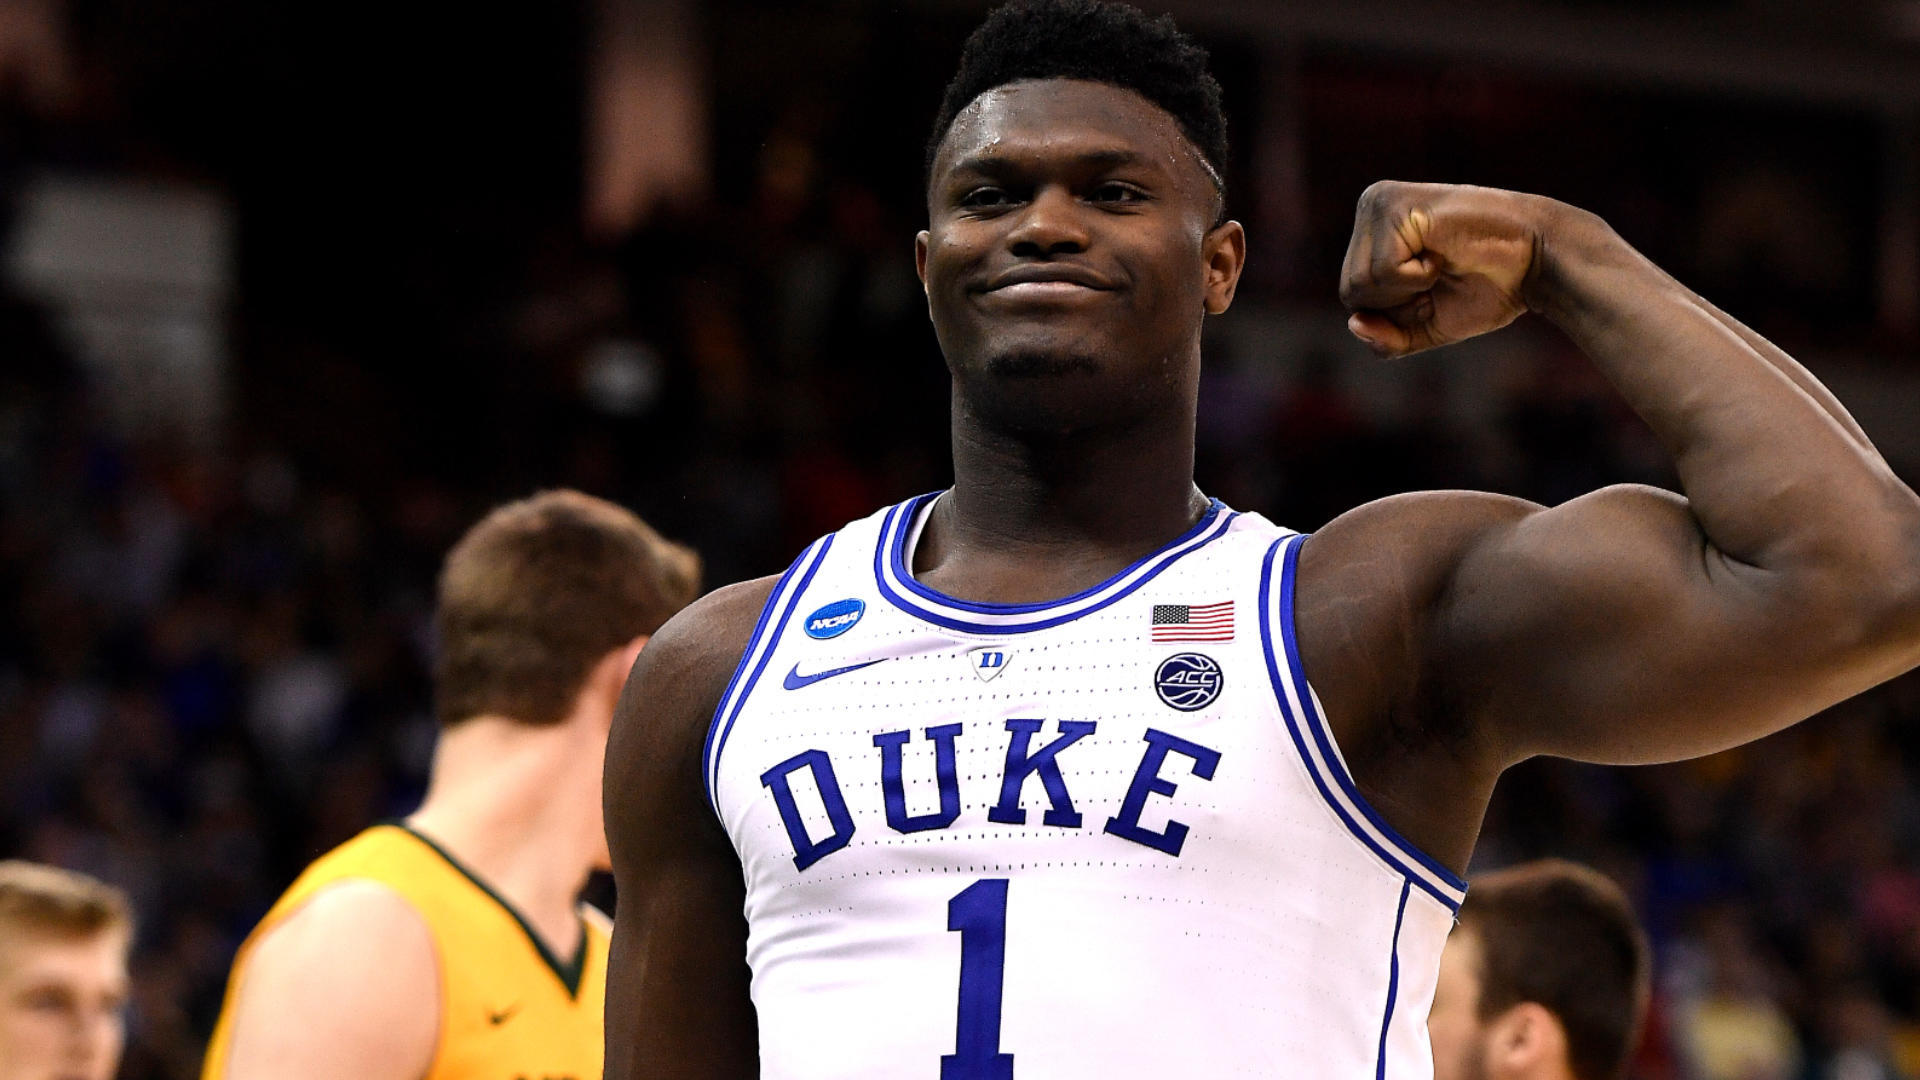 2019 NCAA bracket: March Madness kicks into high gear Friday as upsets, drama, excitement rule on NCAA bracket